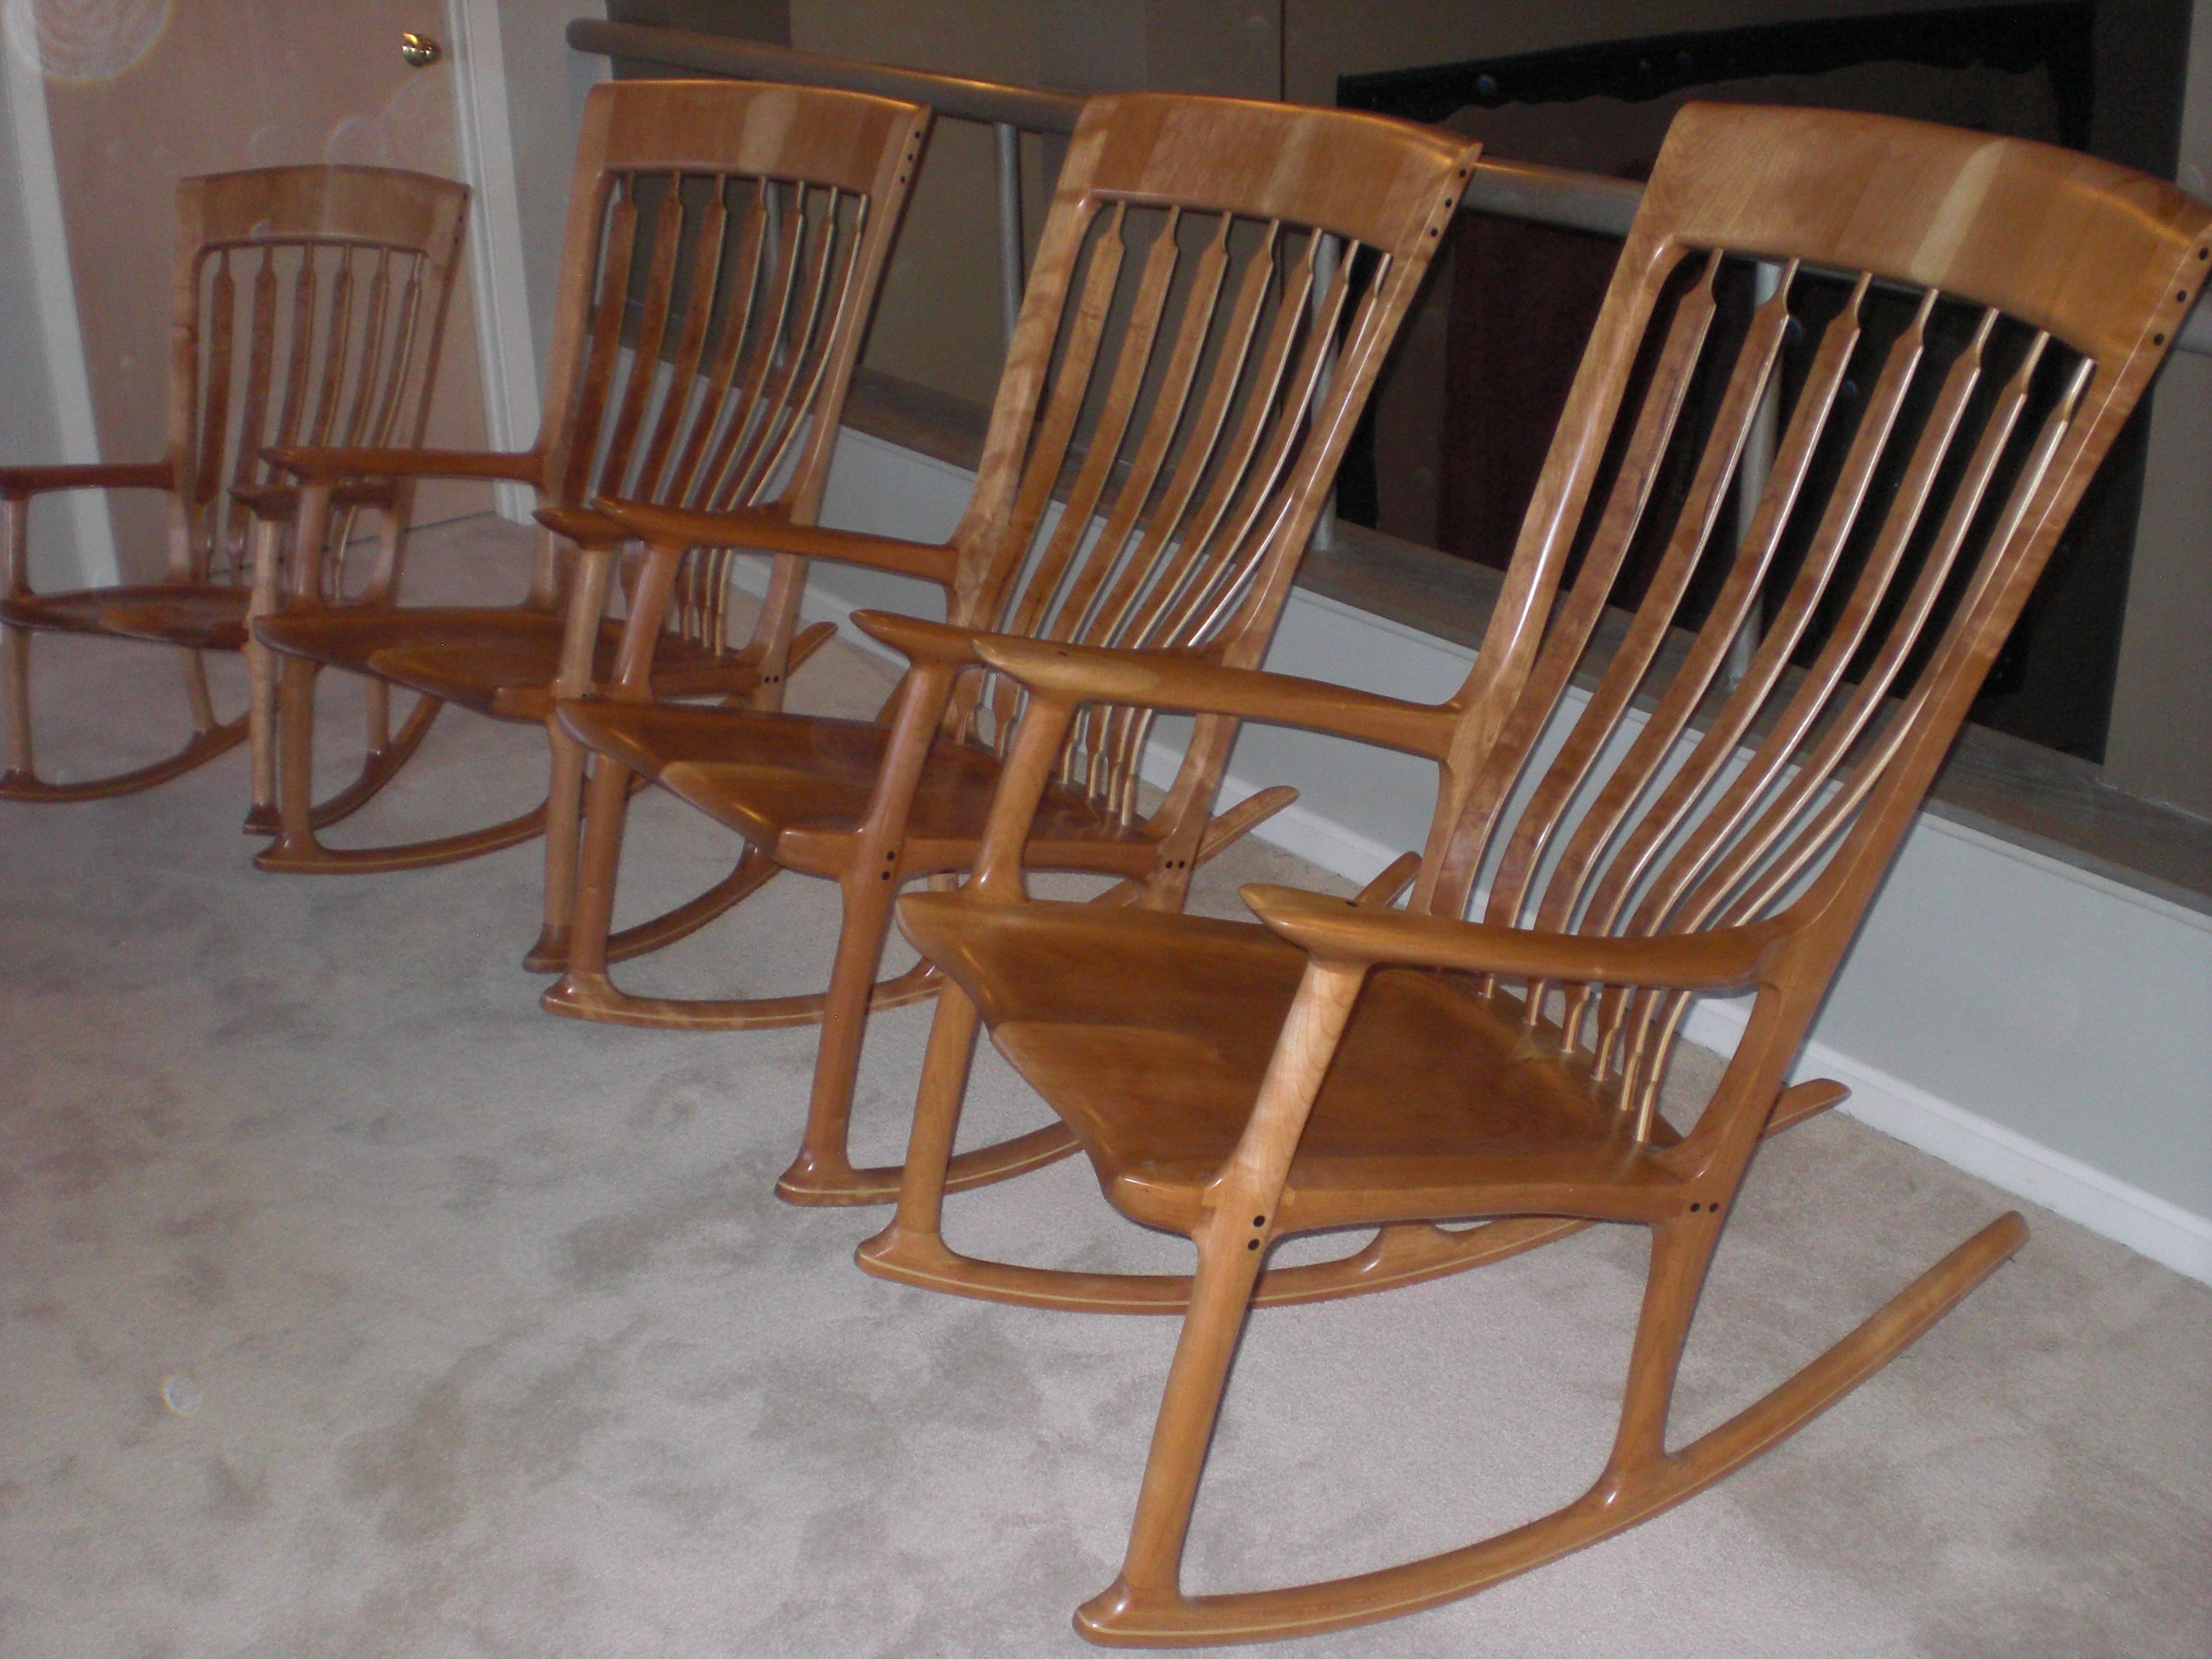 Most Recently Released Rocking Chairs For Adults Pertaining To Chair Sizing – Rocking Chairsr. C (View 4 of 15)